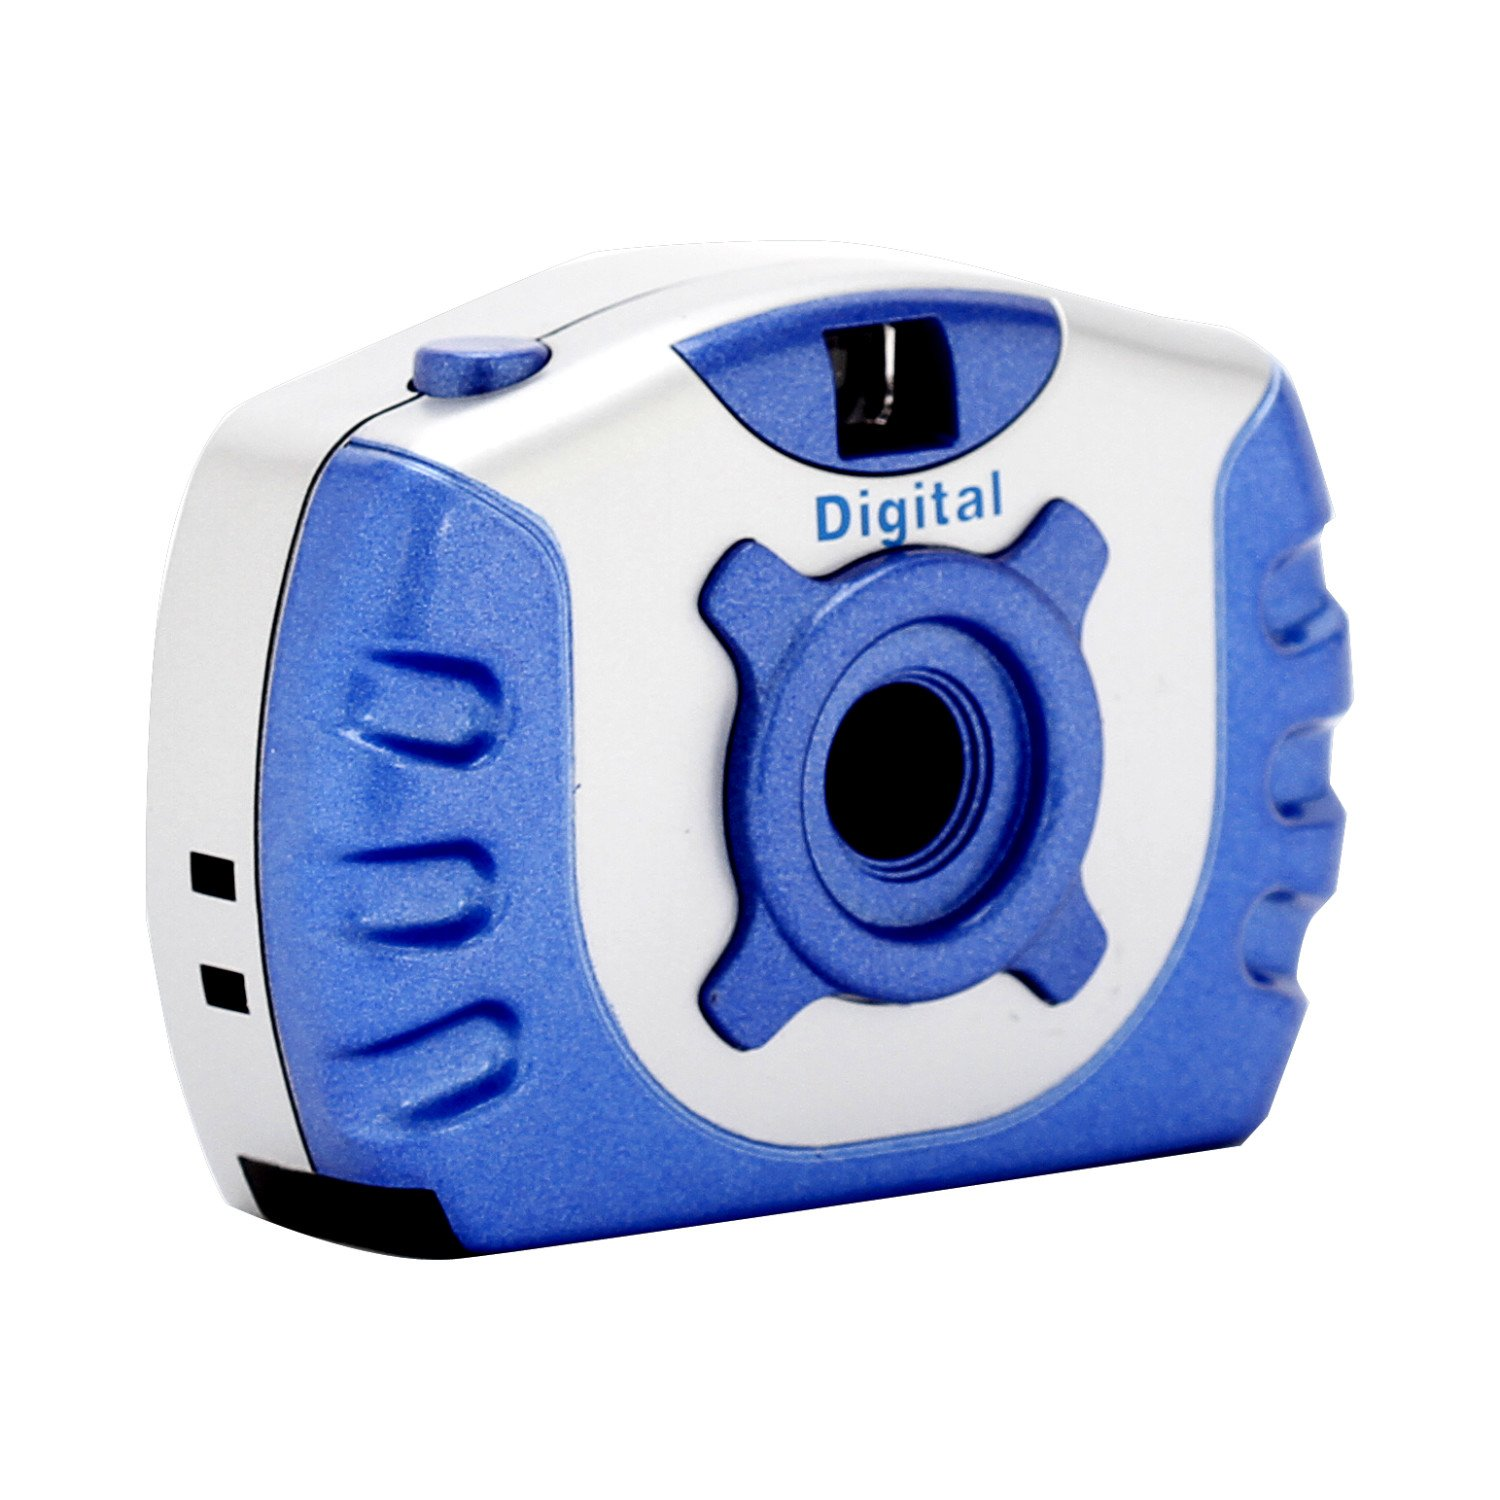 Kidz Digital Camera - Color and Style May Vary by Kidz